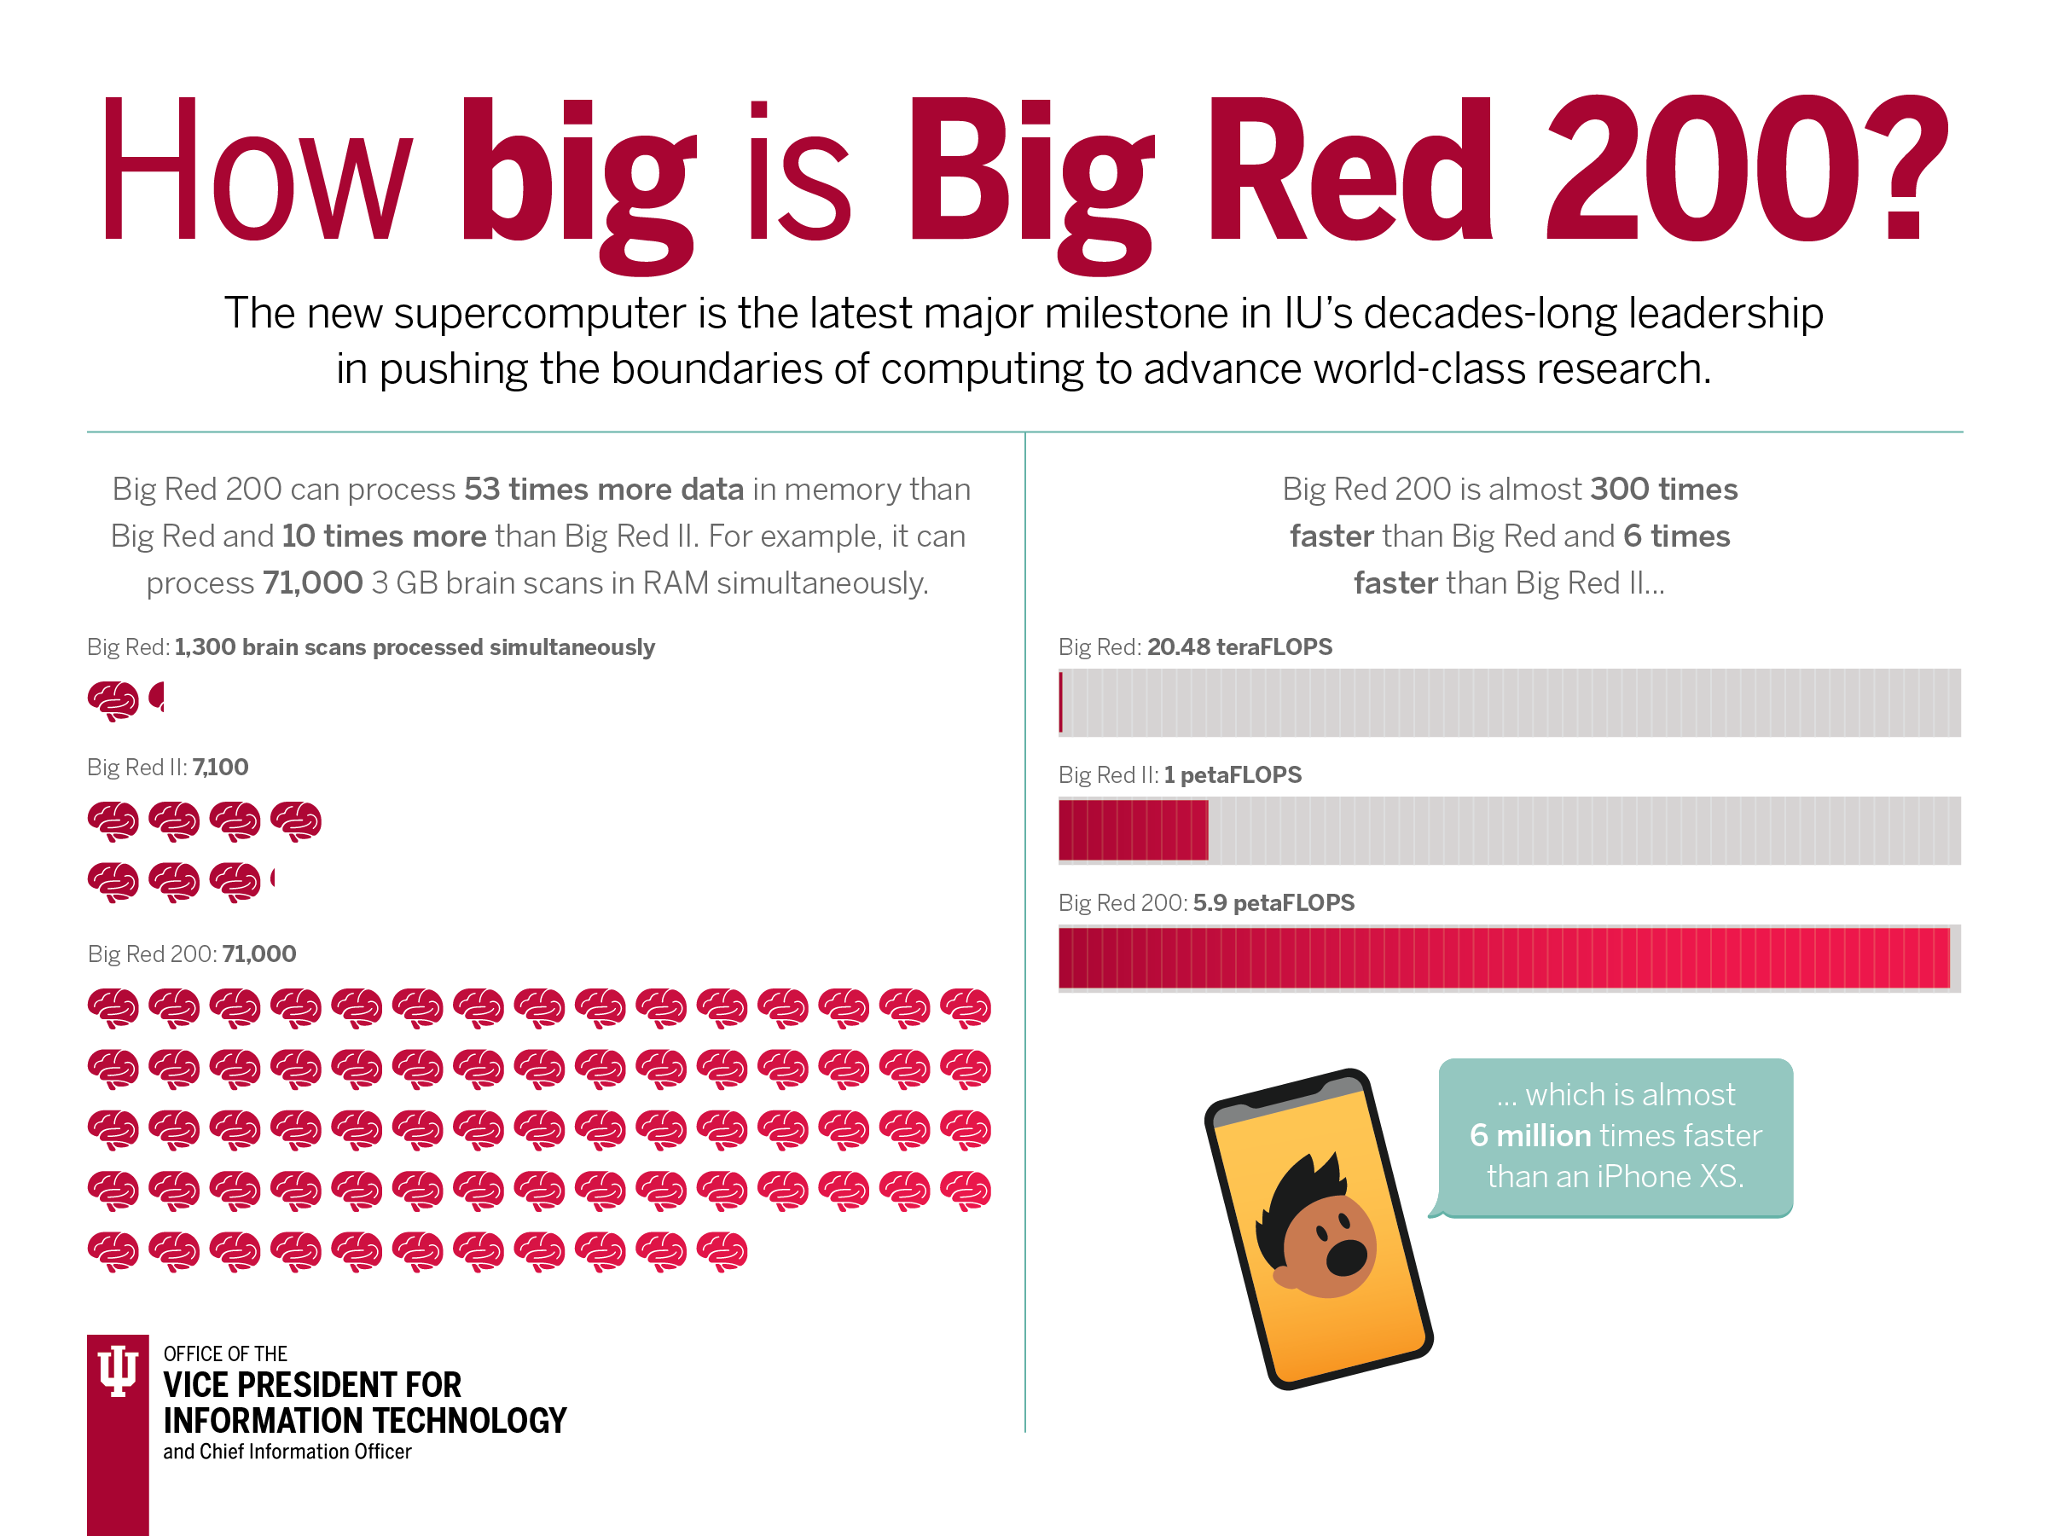 How big is Big Red 200?